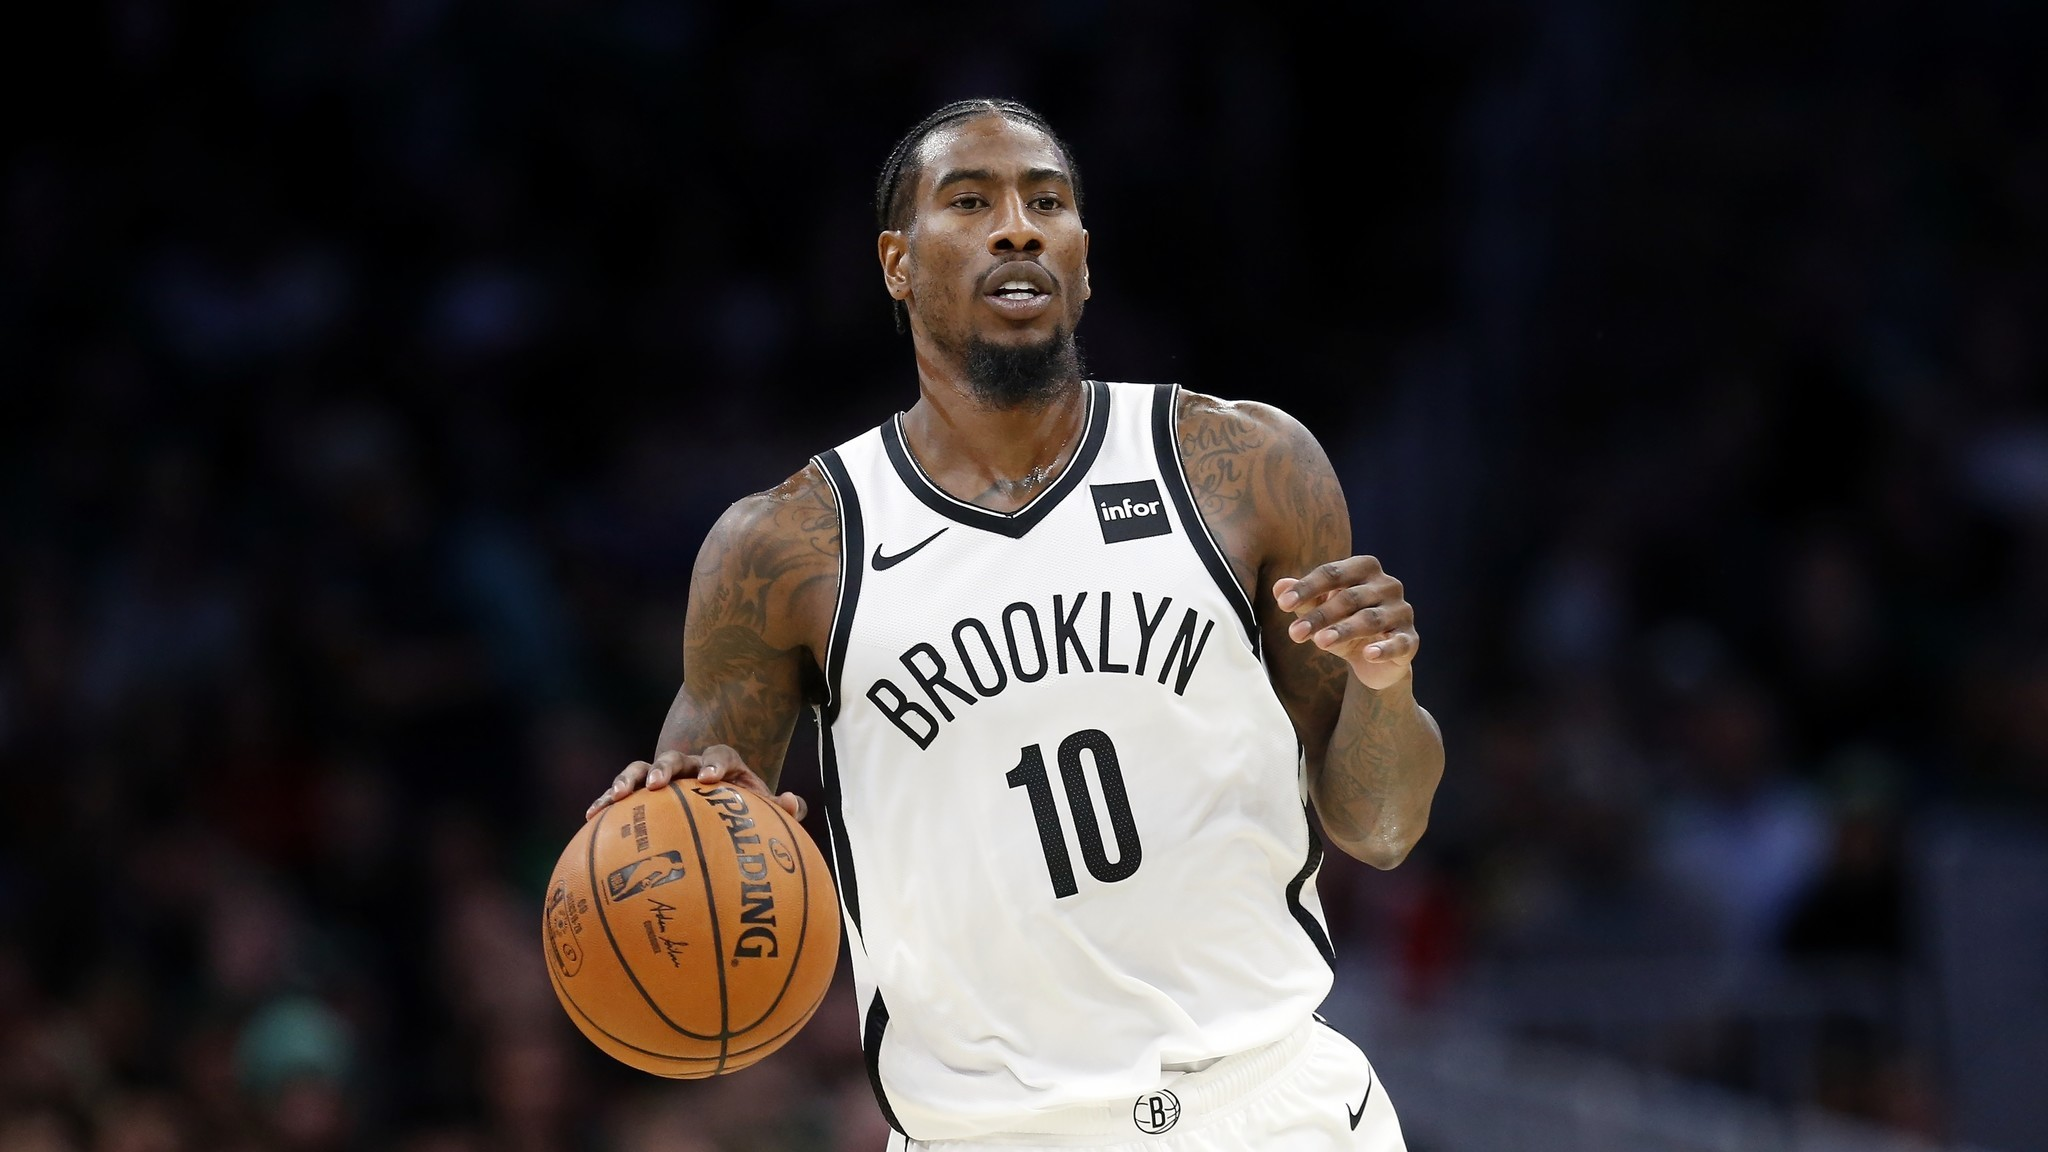 Nets had to waive Iman Shumpert, but they'll miss his defense